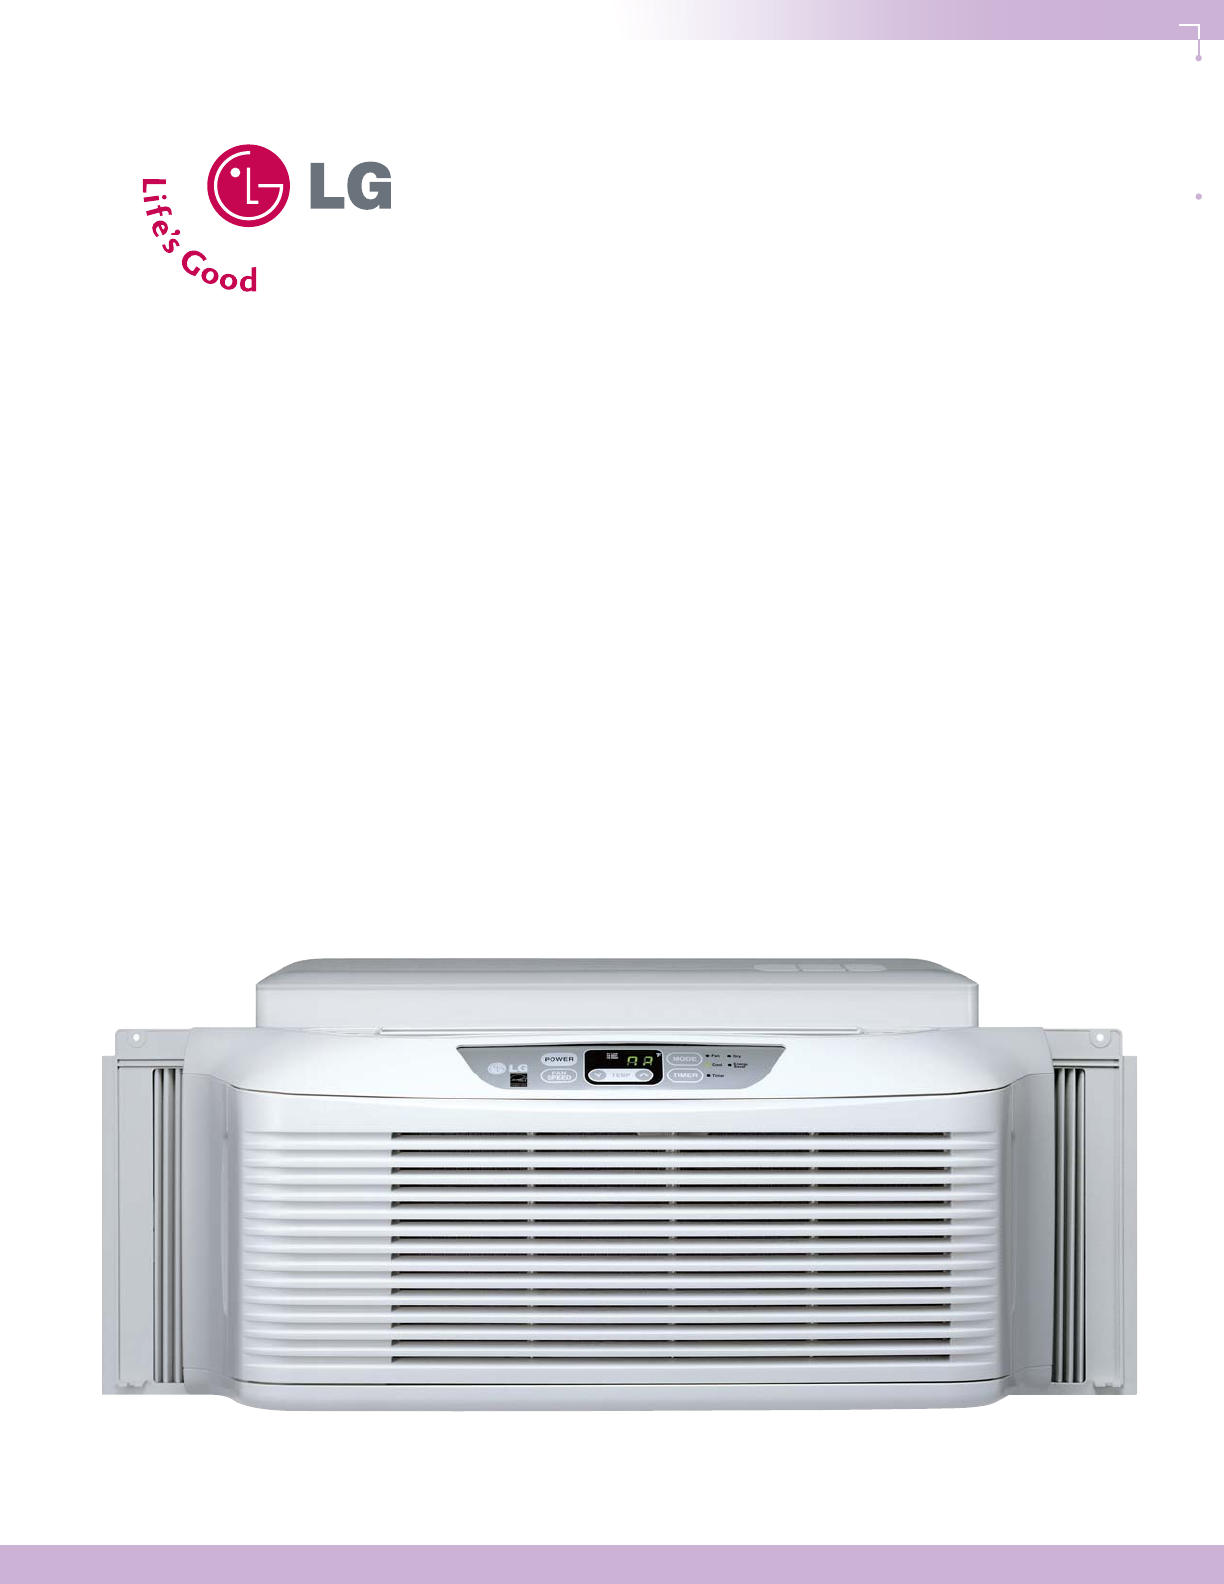 lg electronics air conditioner gl6000er user guide lg air conditioner user manual lg air conditioner operation manual